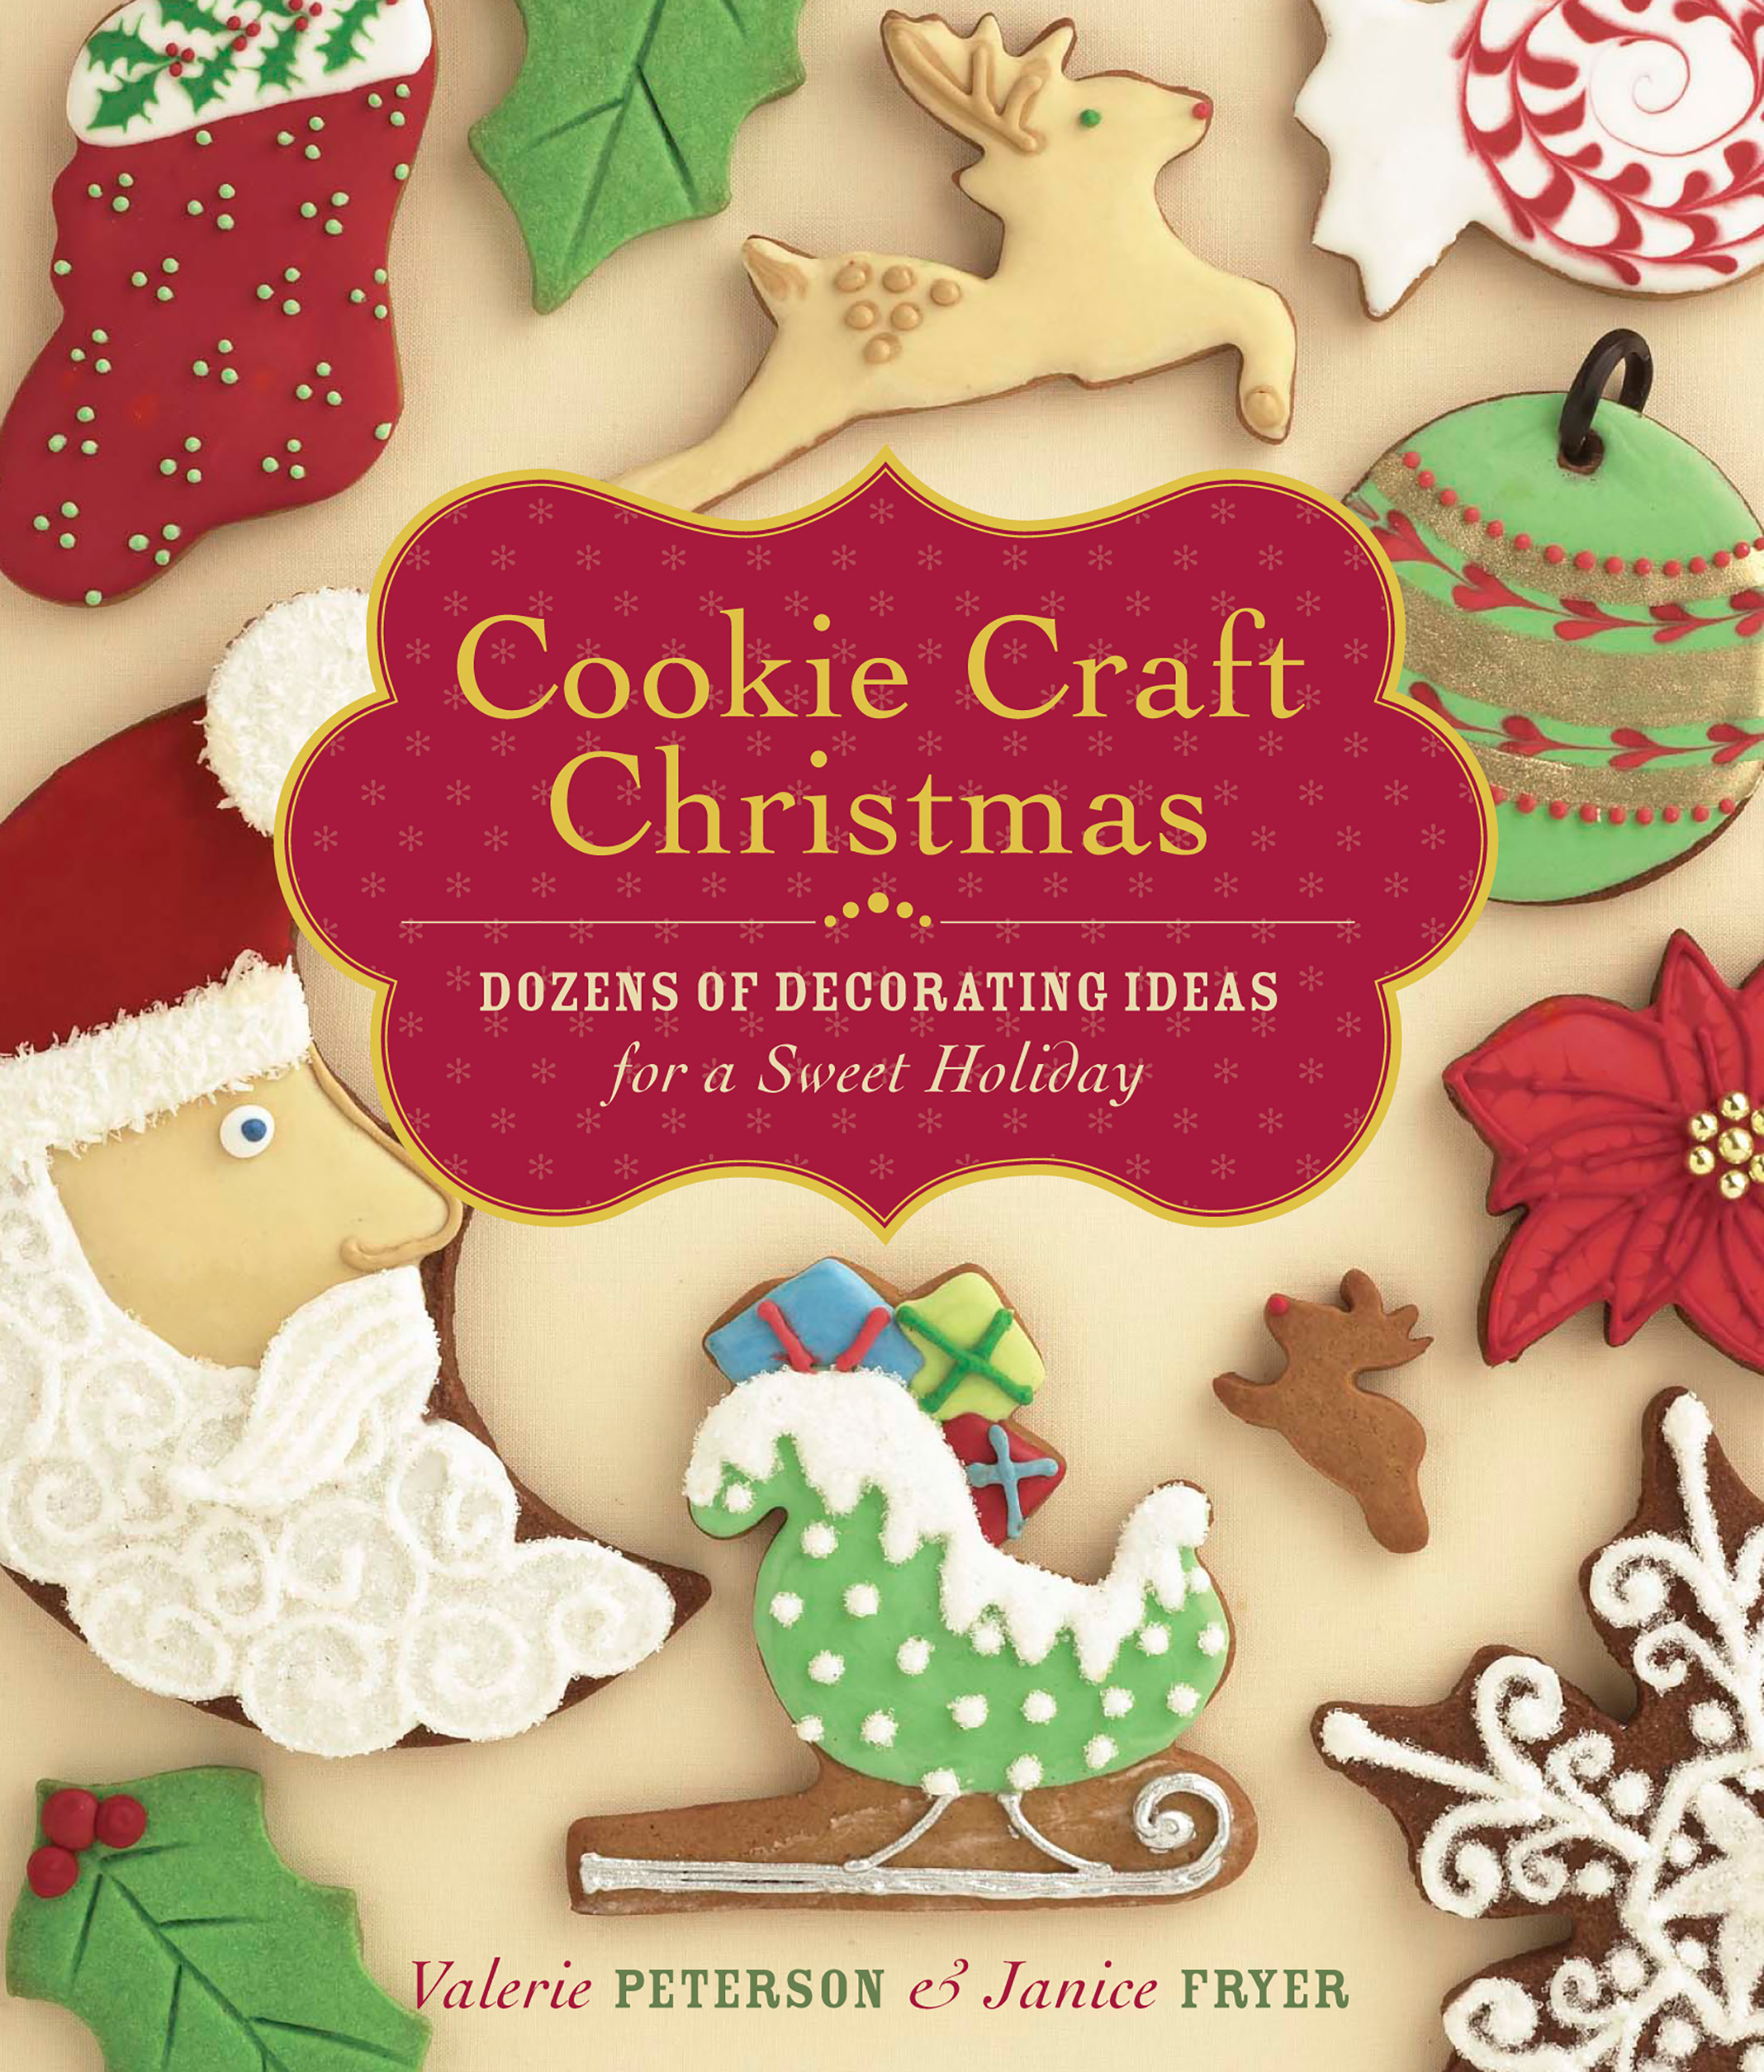 Cookie Craft Christmas Dozens of Decorating Ideas for a Sweet Holiday